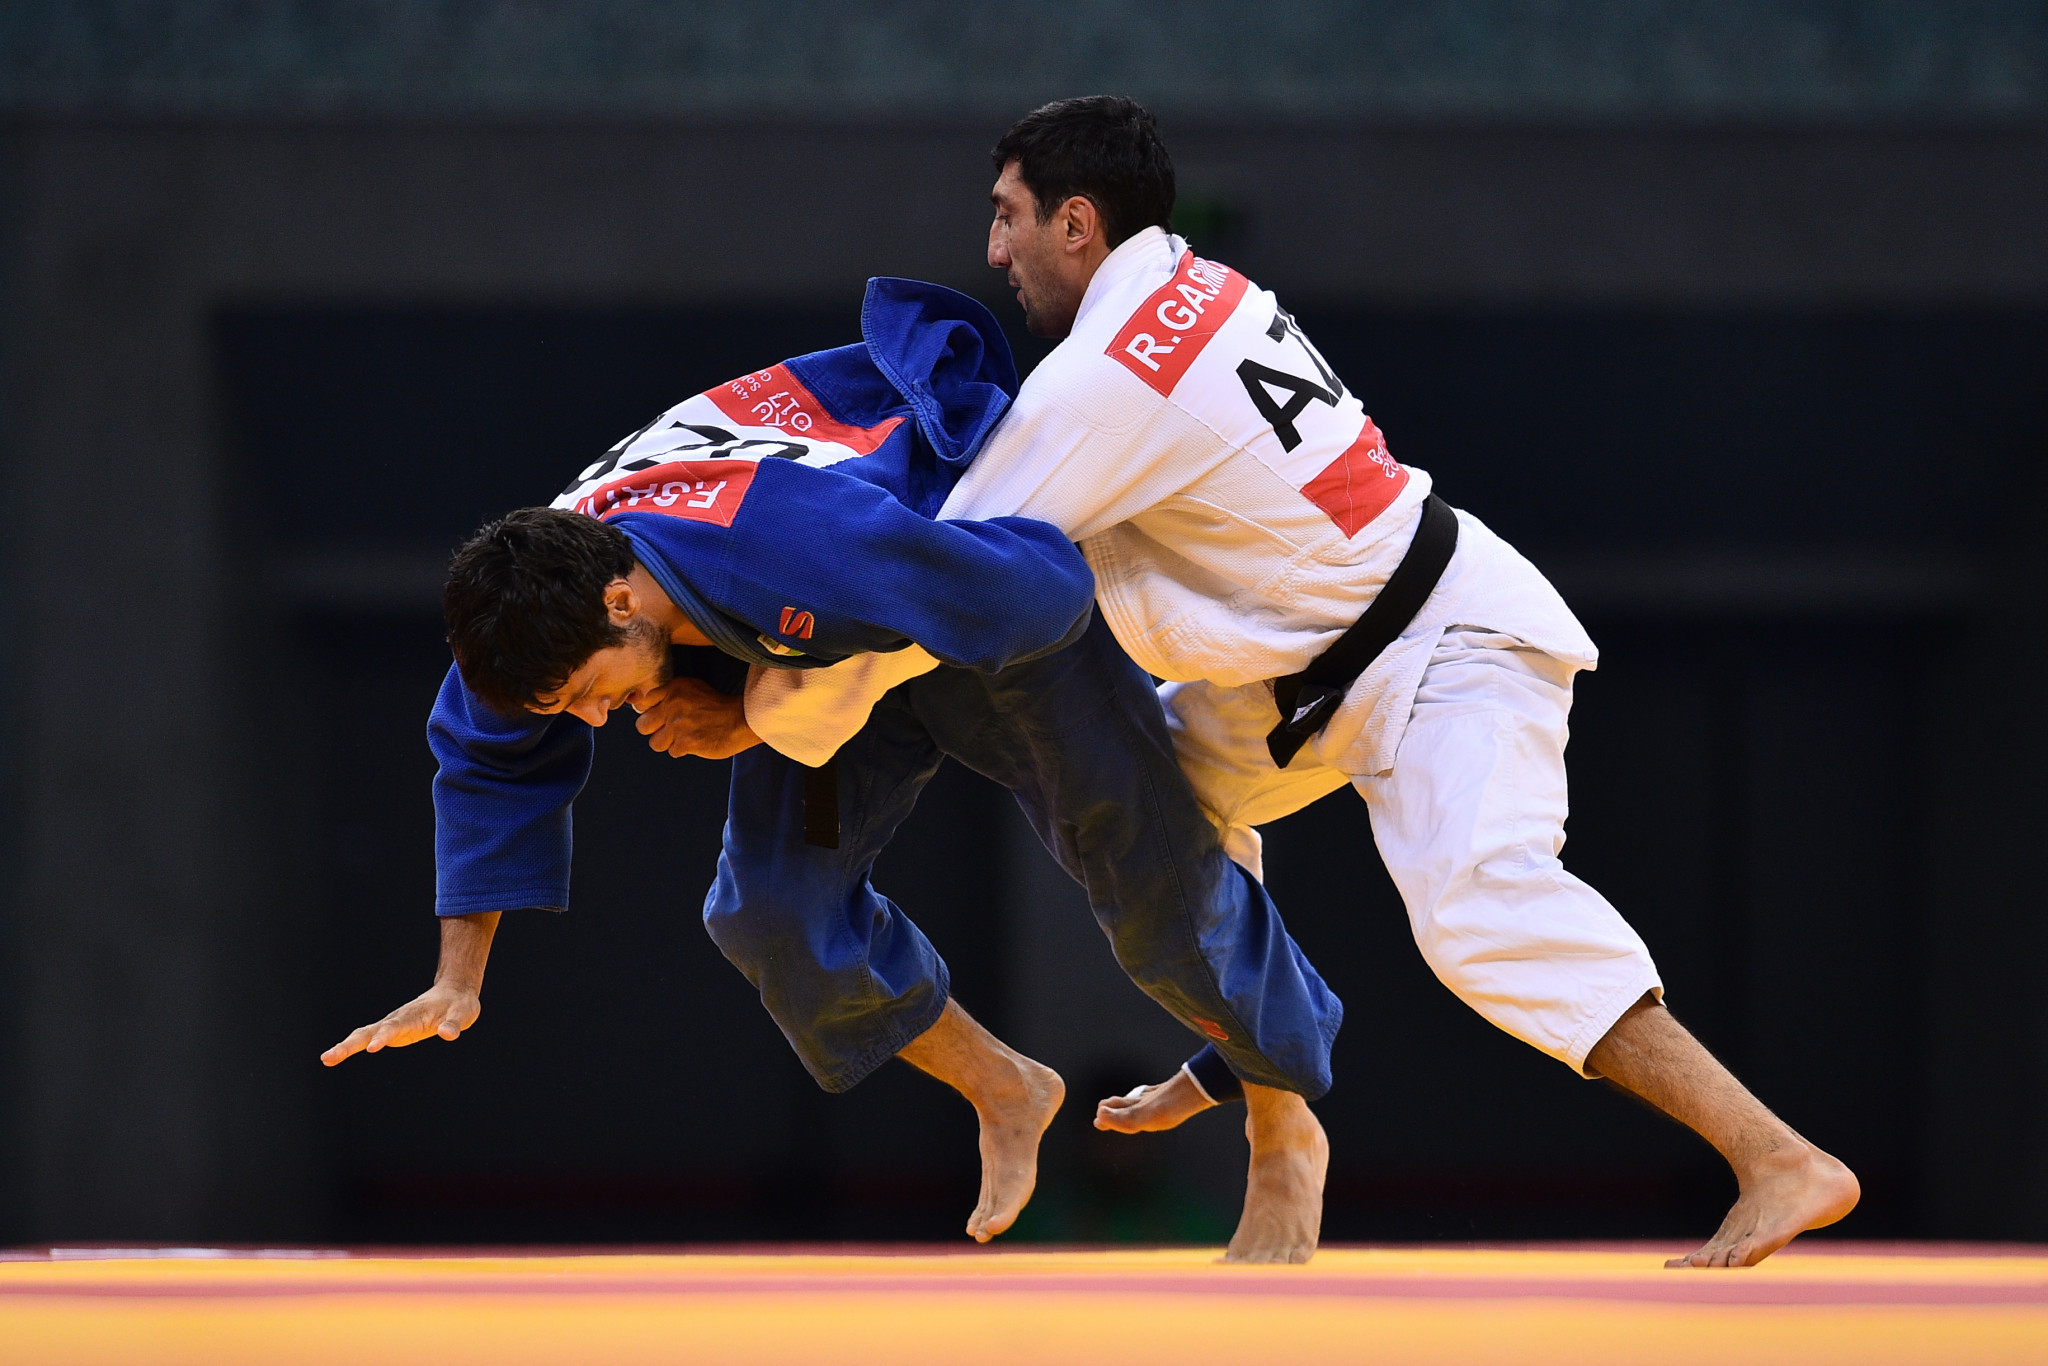 Judo will feature as a fully competitive sport at the European Para Youth Games ©Getty Images